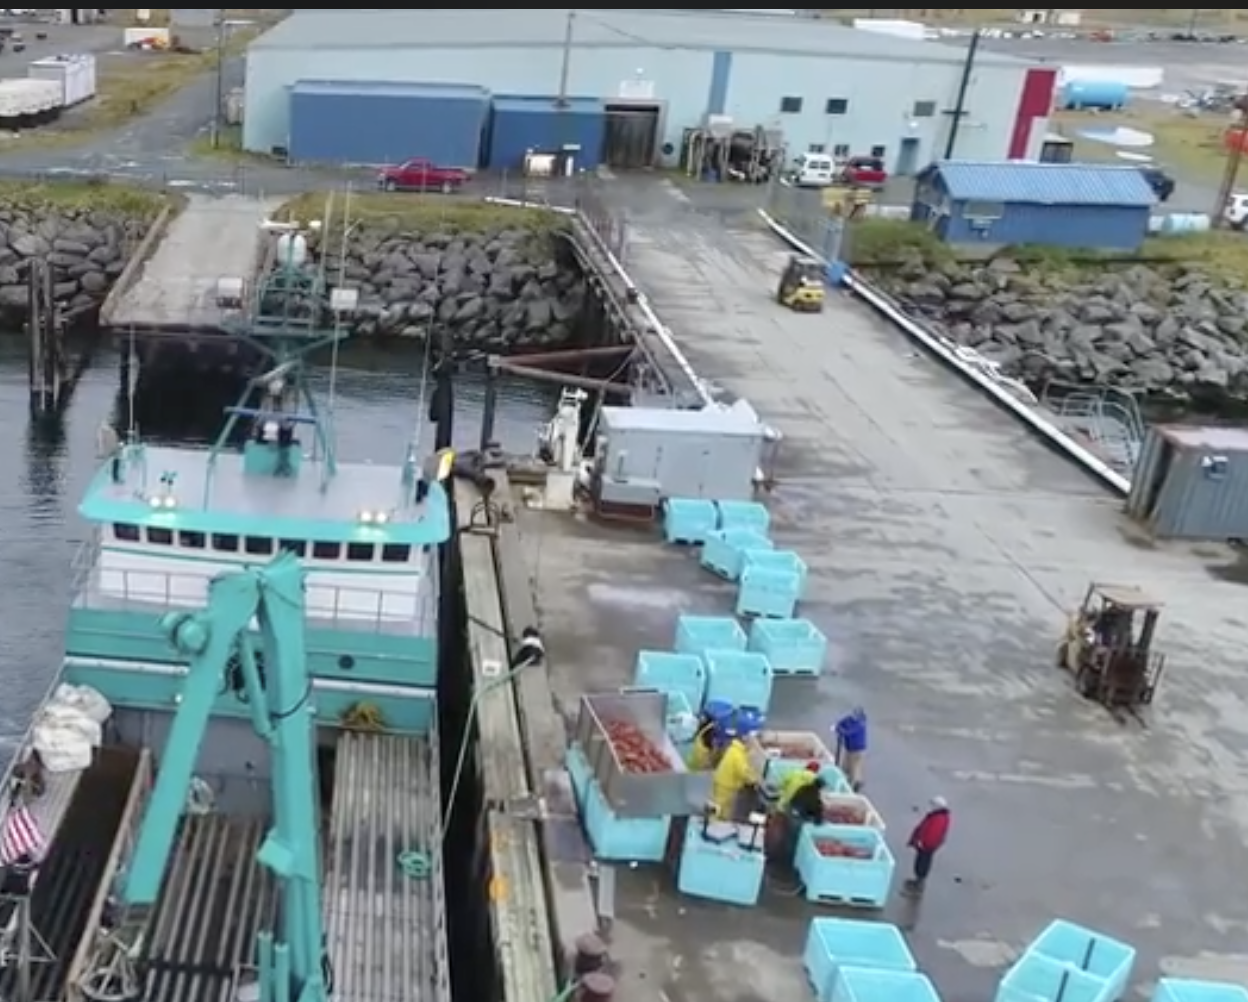 Adak 5000 ton Cod Allocation Gets Discussed at Council, as Unforeseen Scenario Put it at Risk